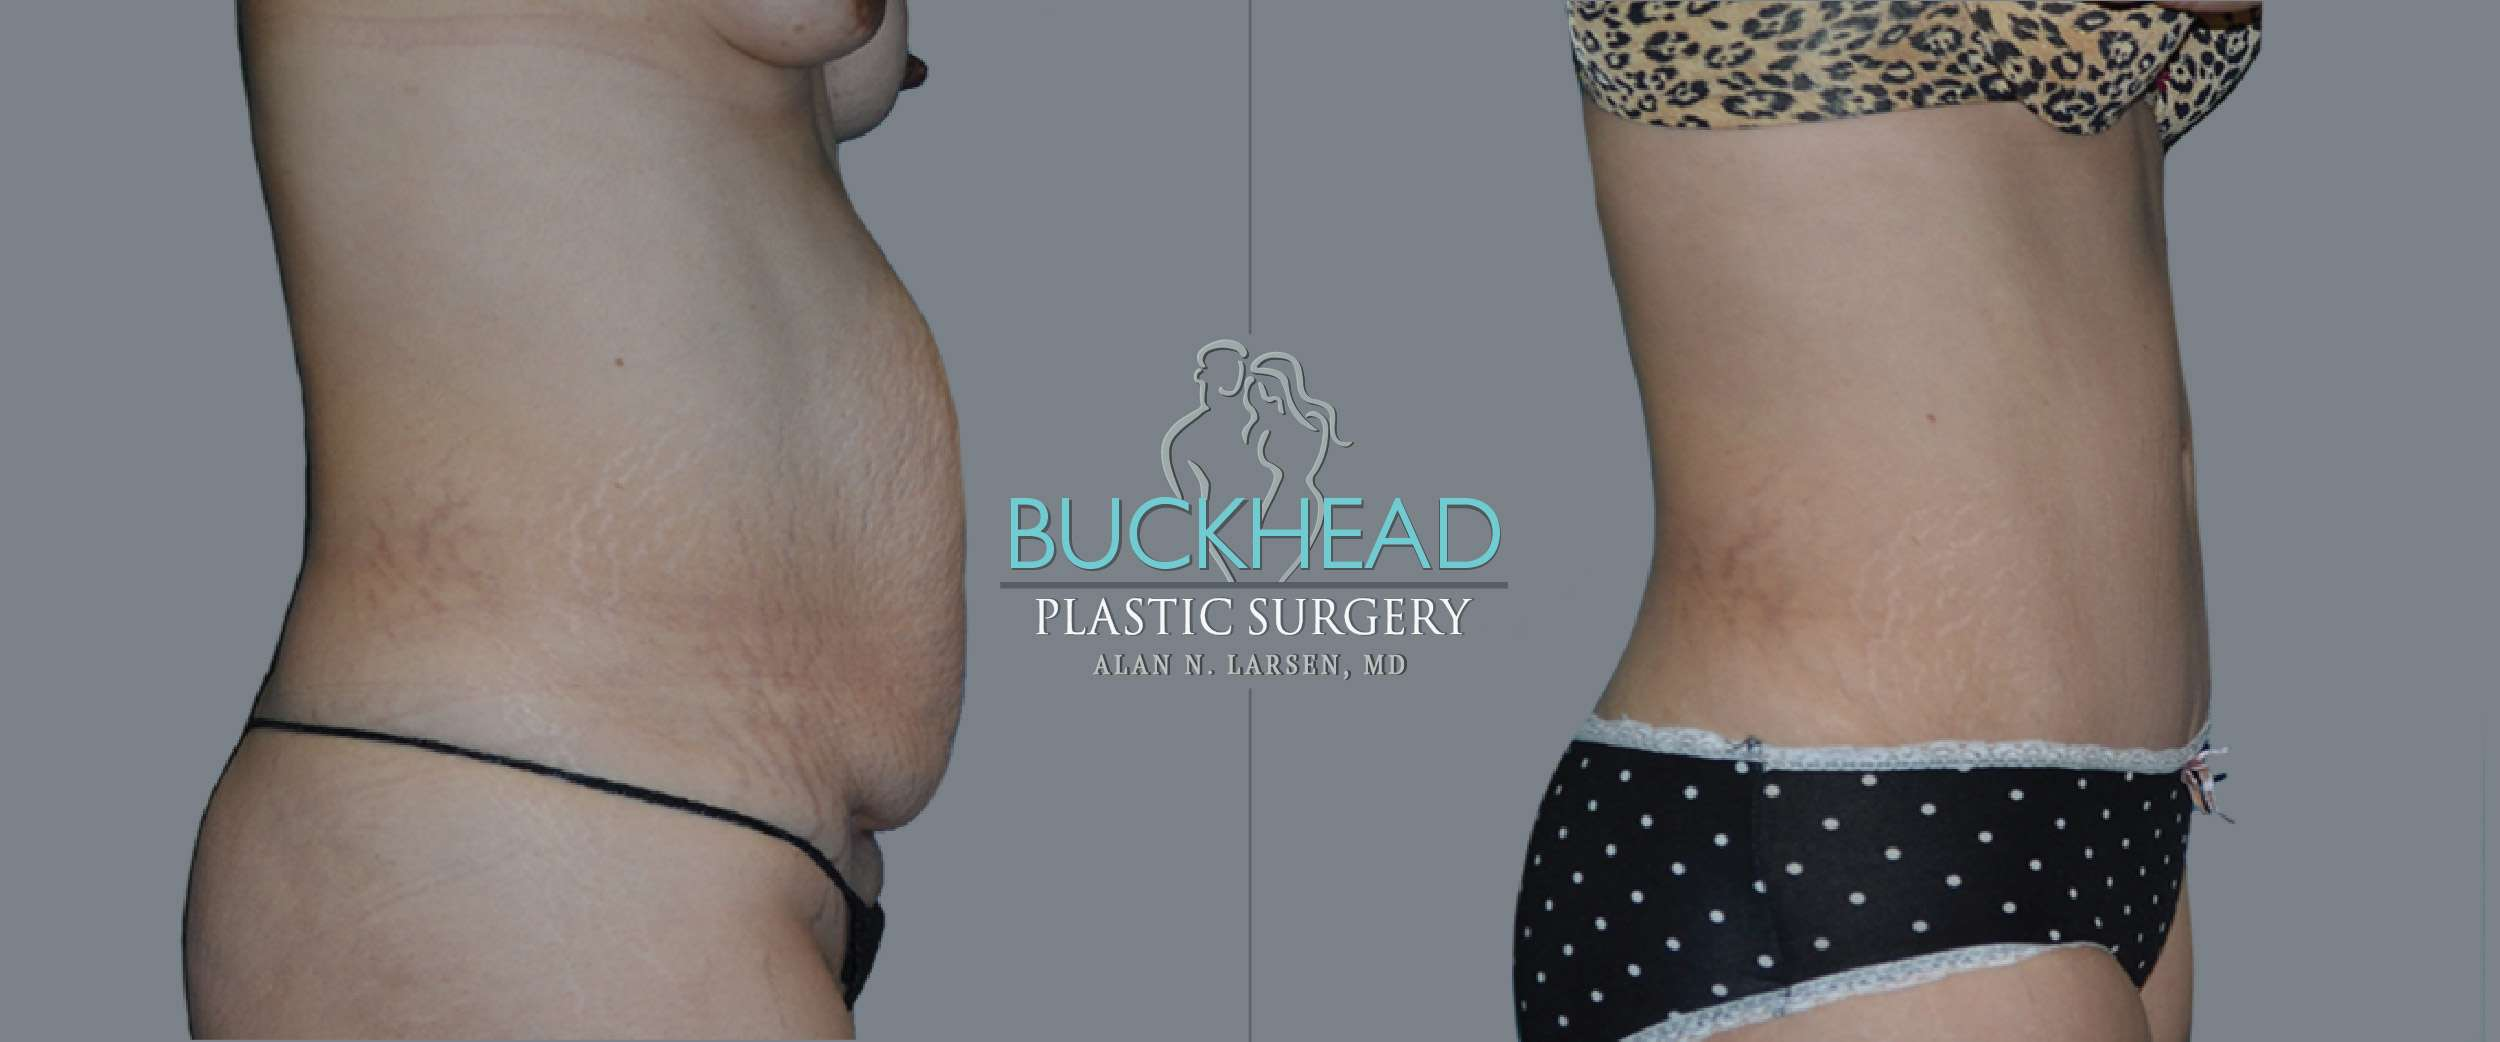 Before and After Photo gallery   Tummy Tuck   Buckhead Plastic Surgery   Board-Certified Plastic Surgeon in Atlanta GA